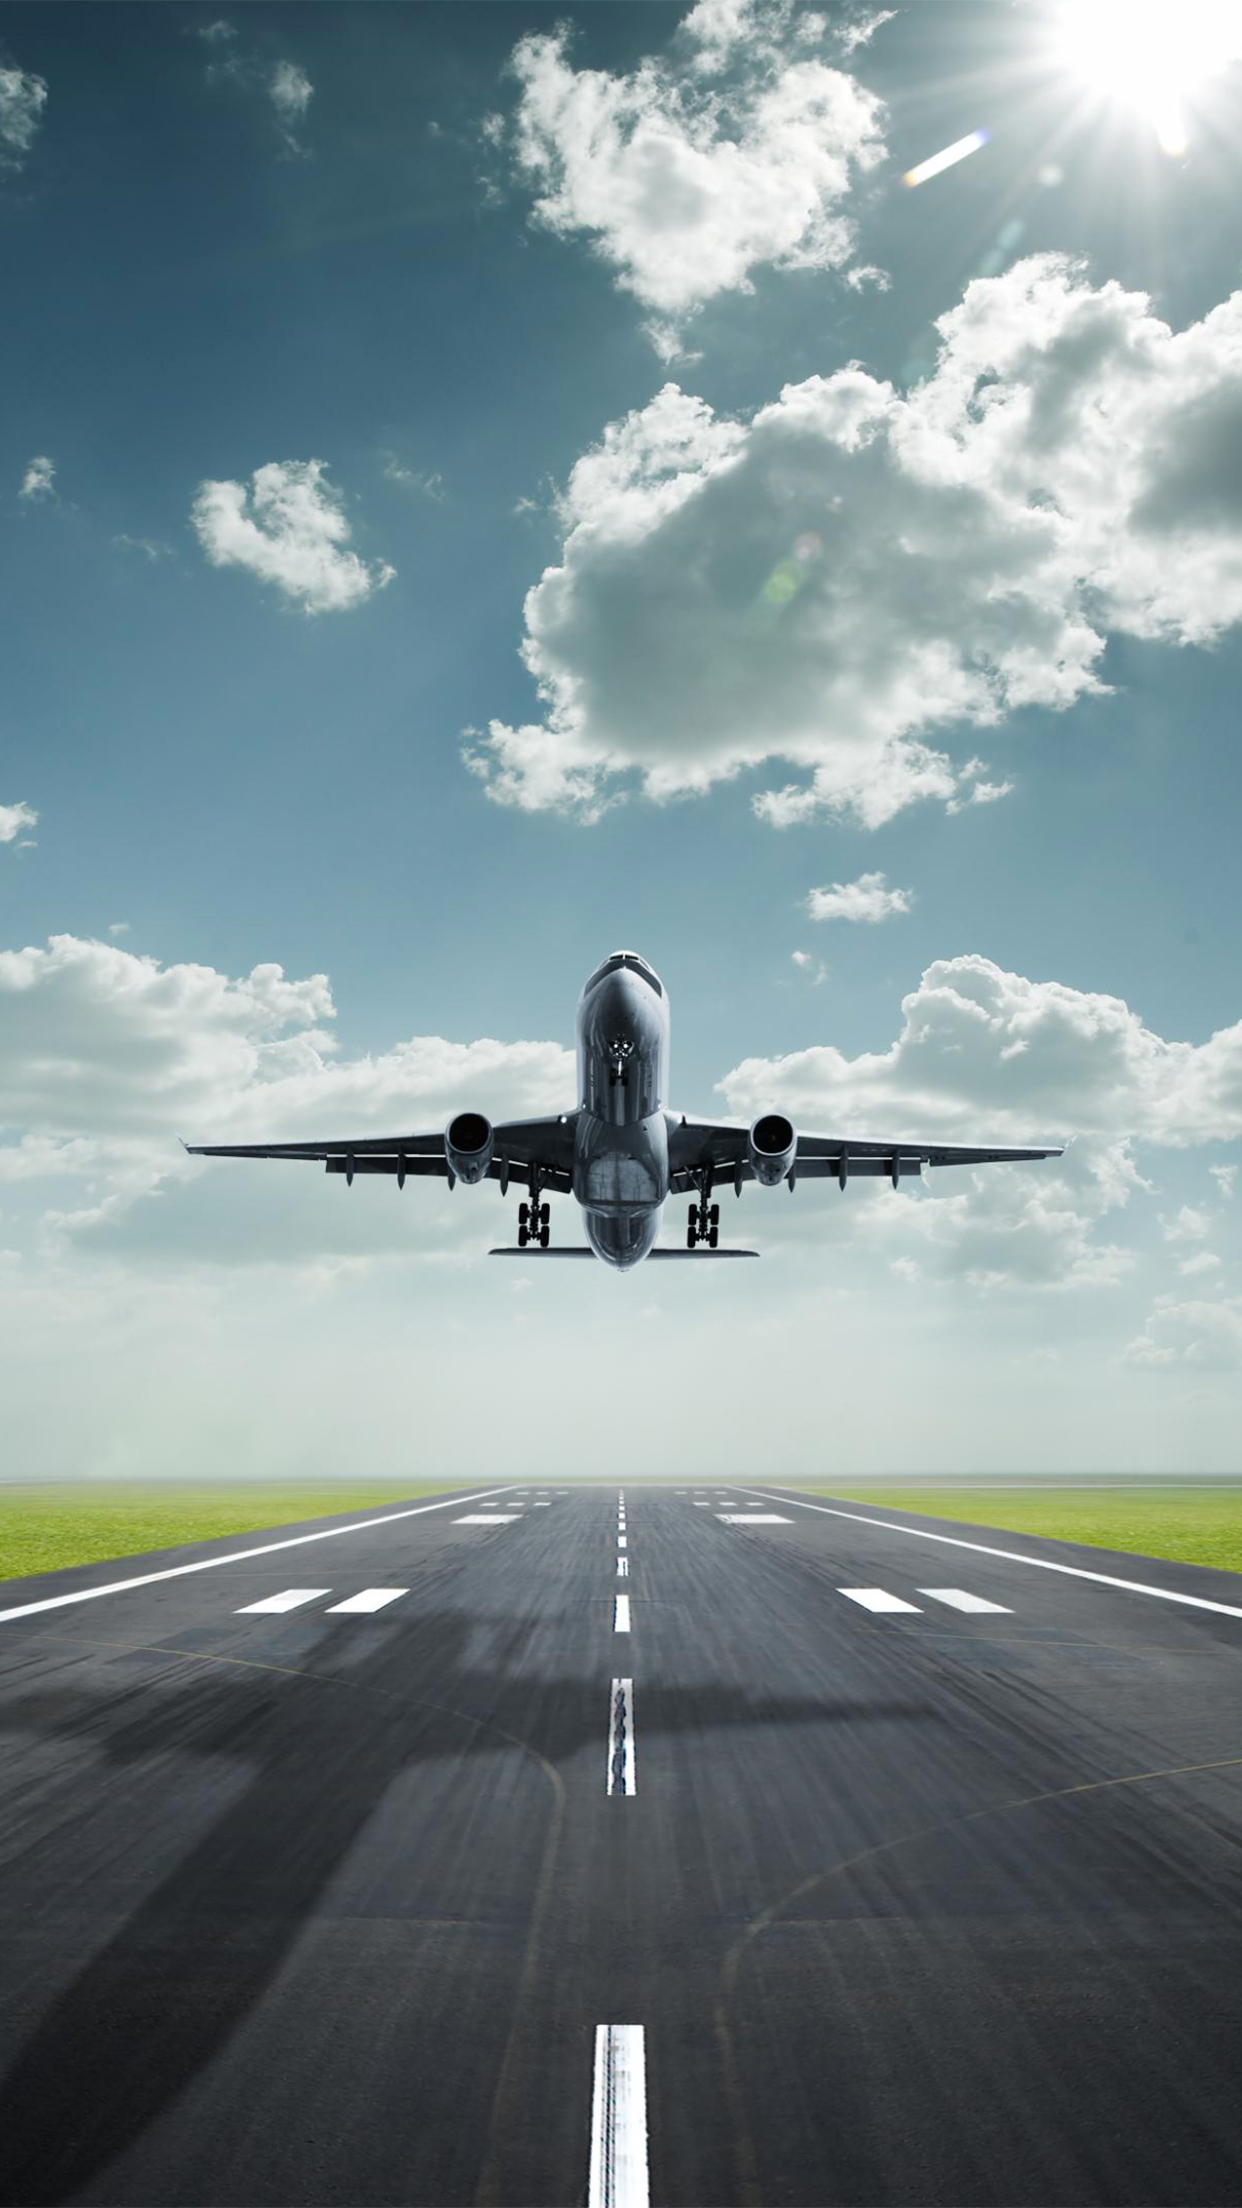 Plane Airport 3Wallpapers iPhone Parallax Plane Airport